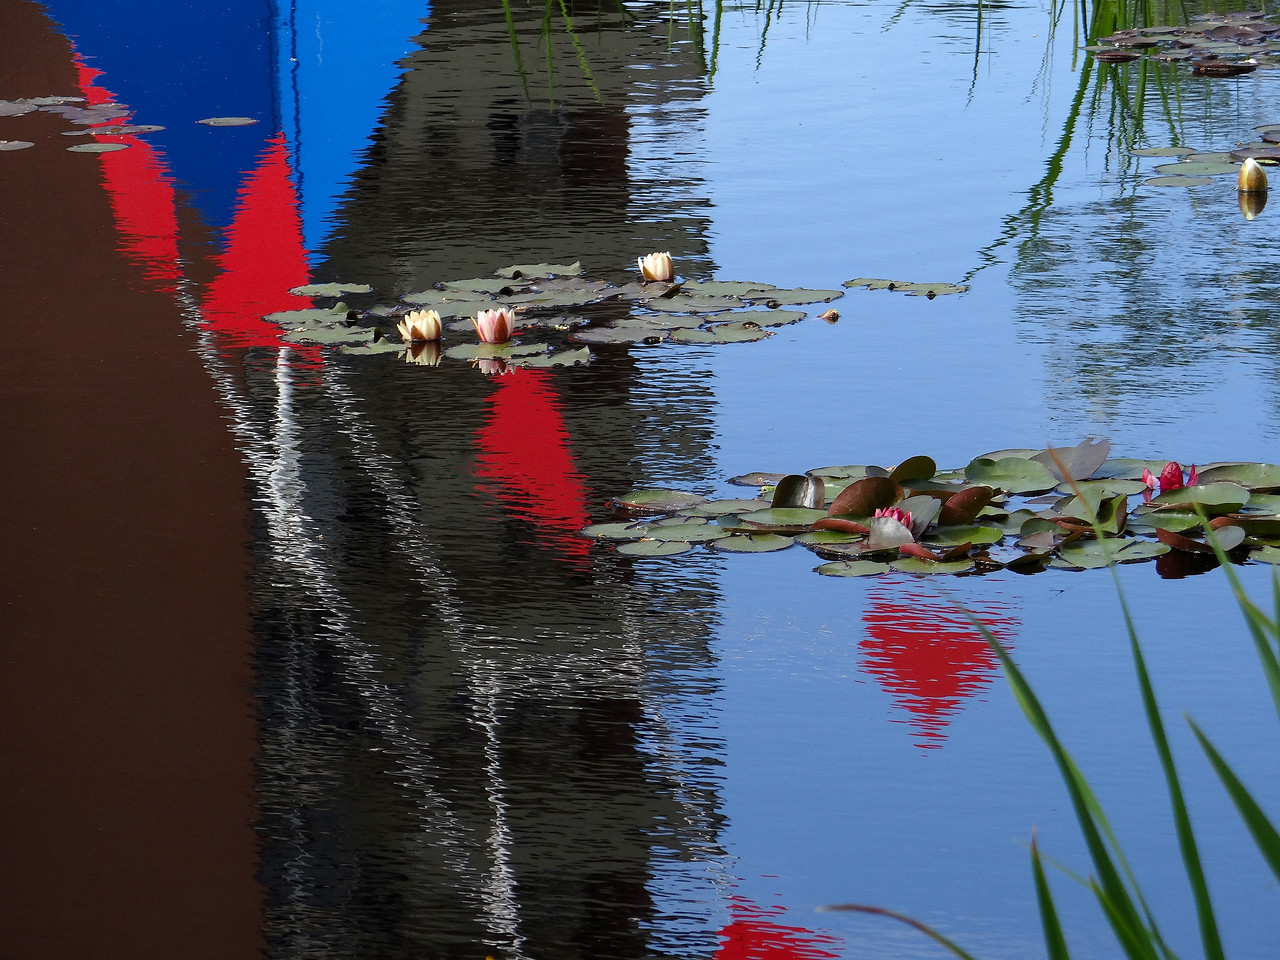 Calder reflection and water lilies